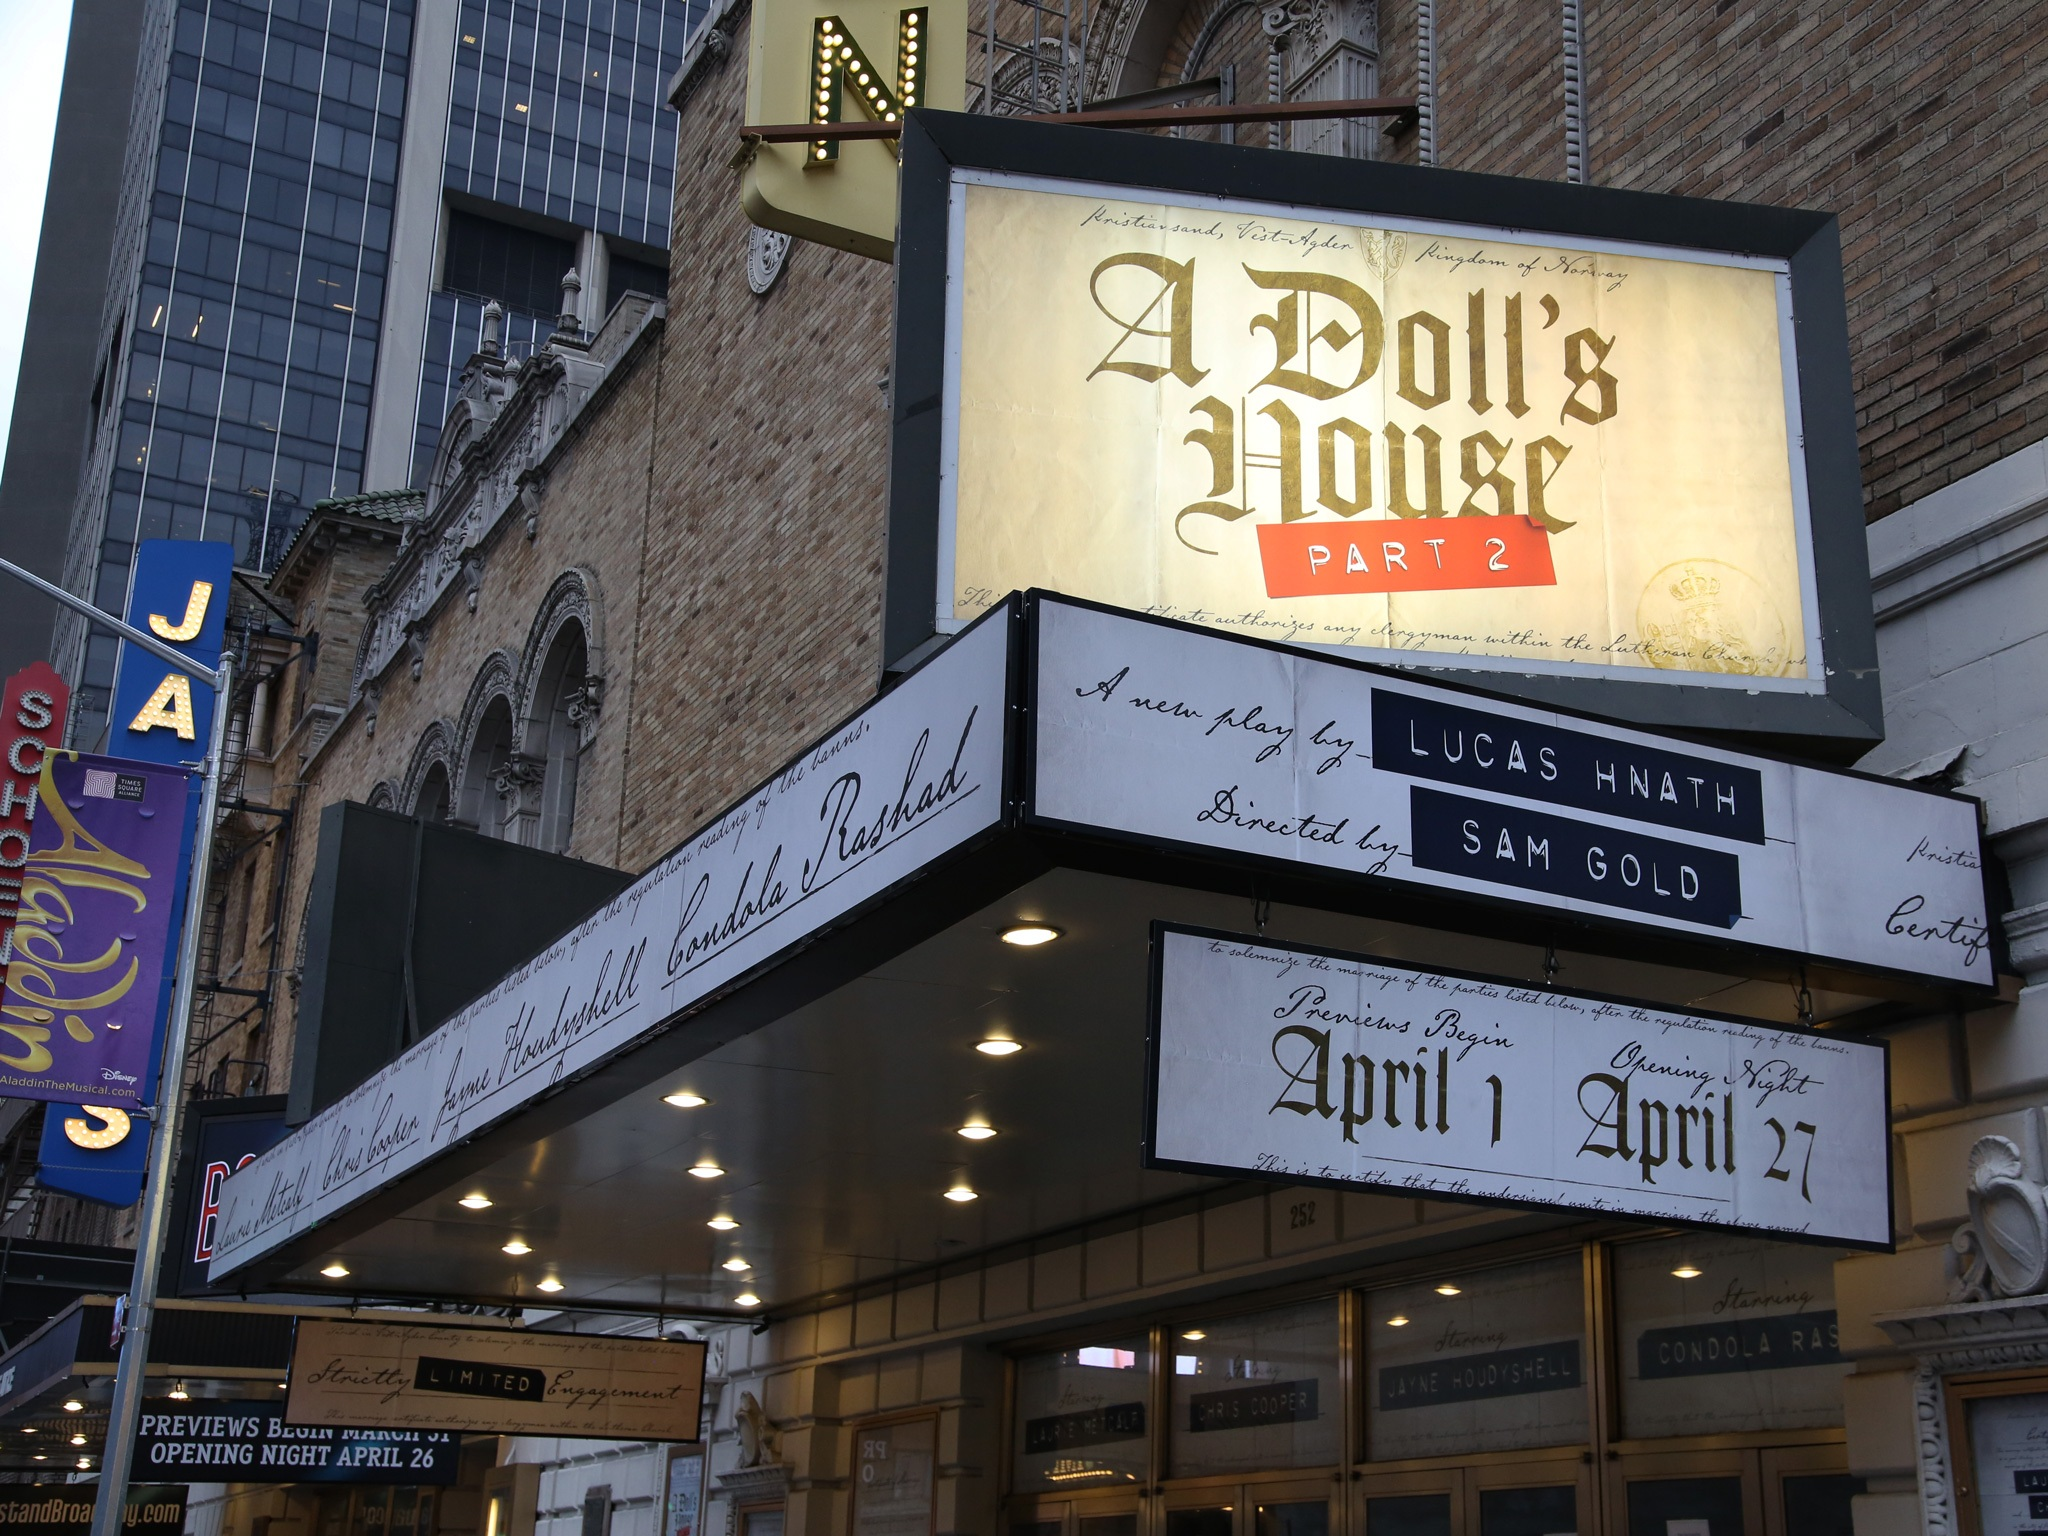 A Doll's House, Part 2 Marquee